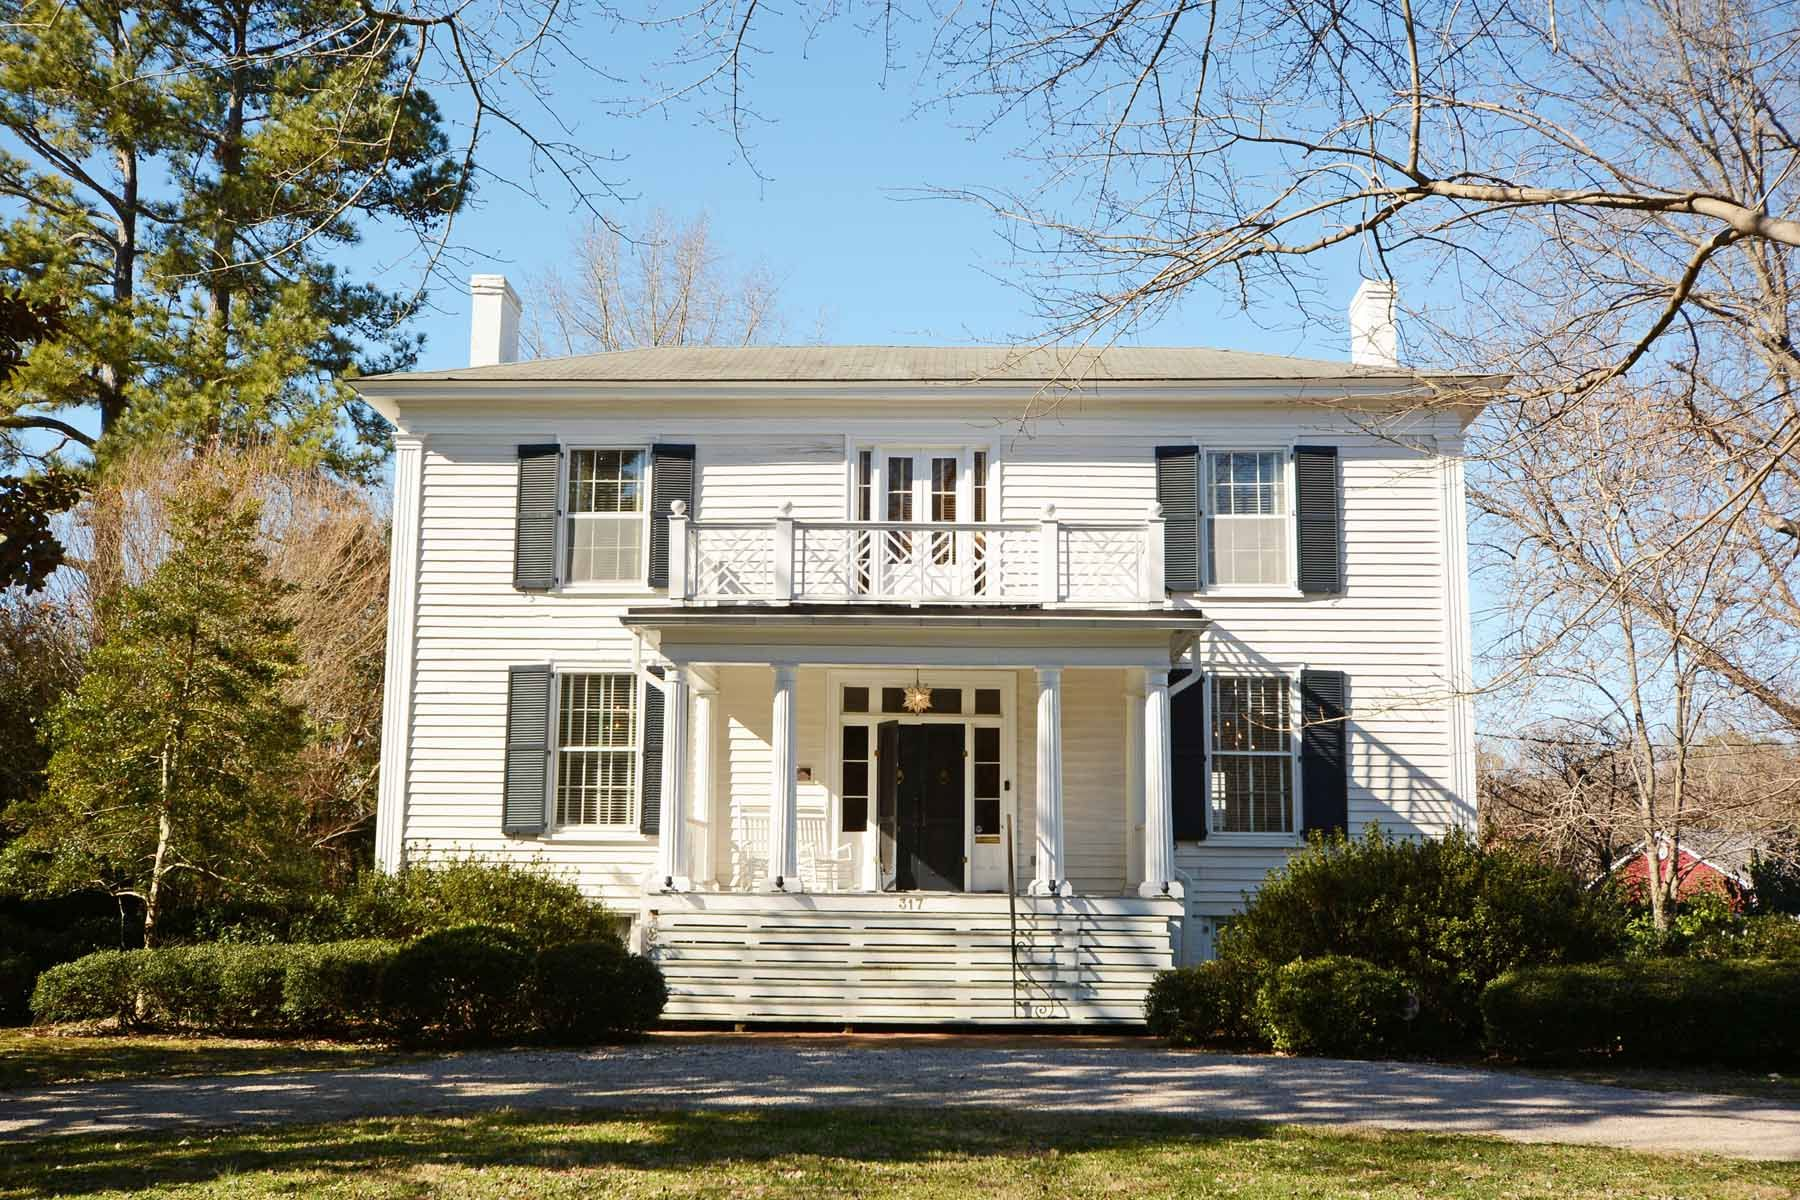 Single Family Home for Active at Green-Parker-Tarwater House 317 N. Main Street Warrenton, North Carolina 27589 United States